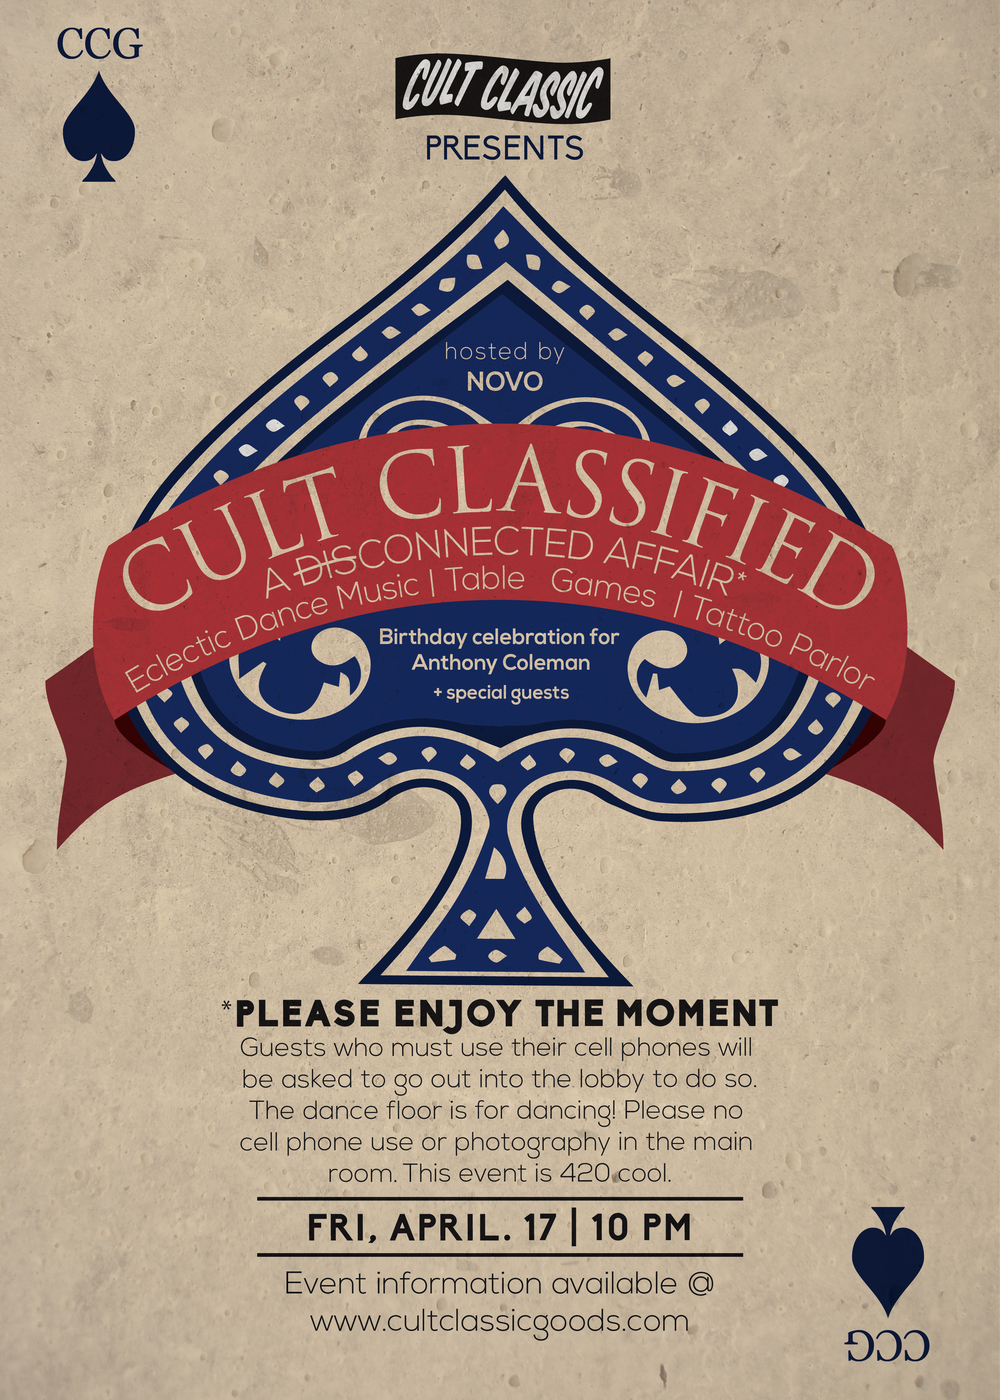 cult-classic-cult-classified